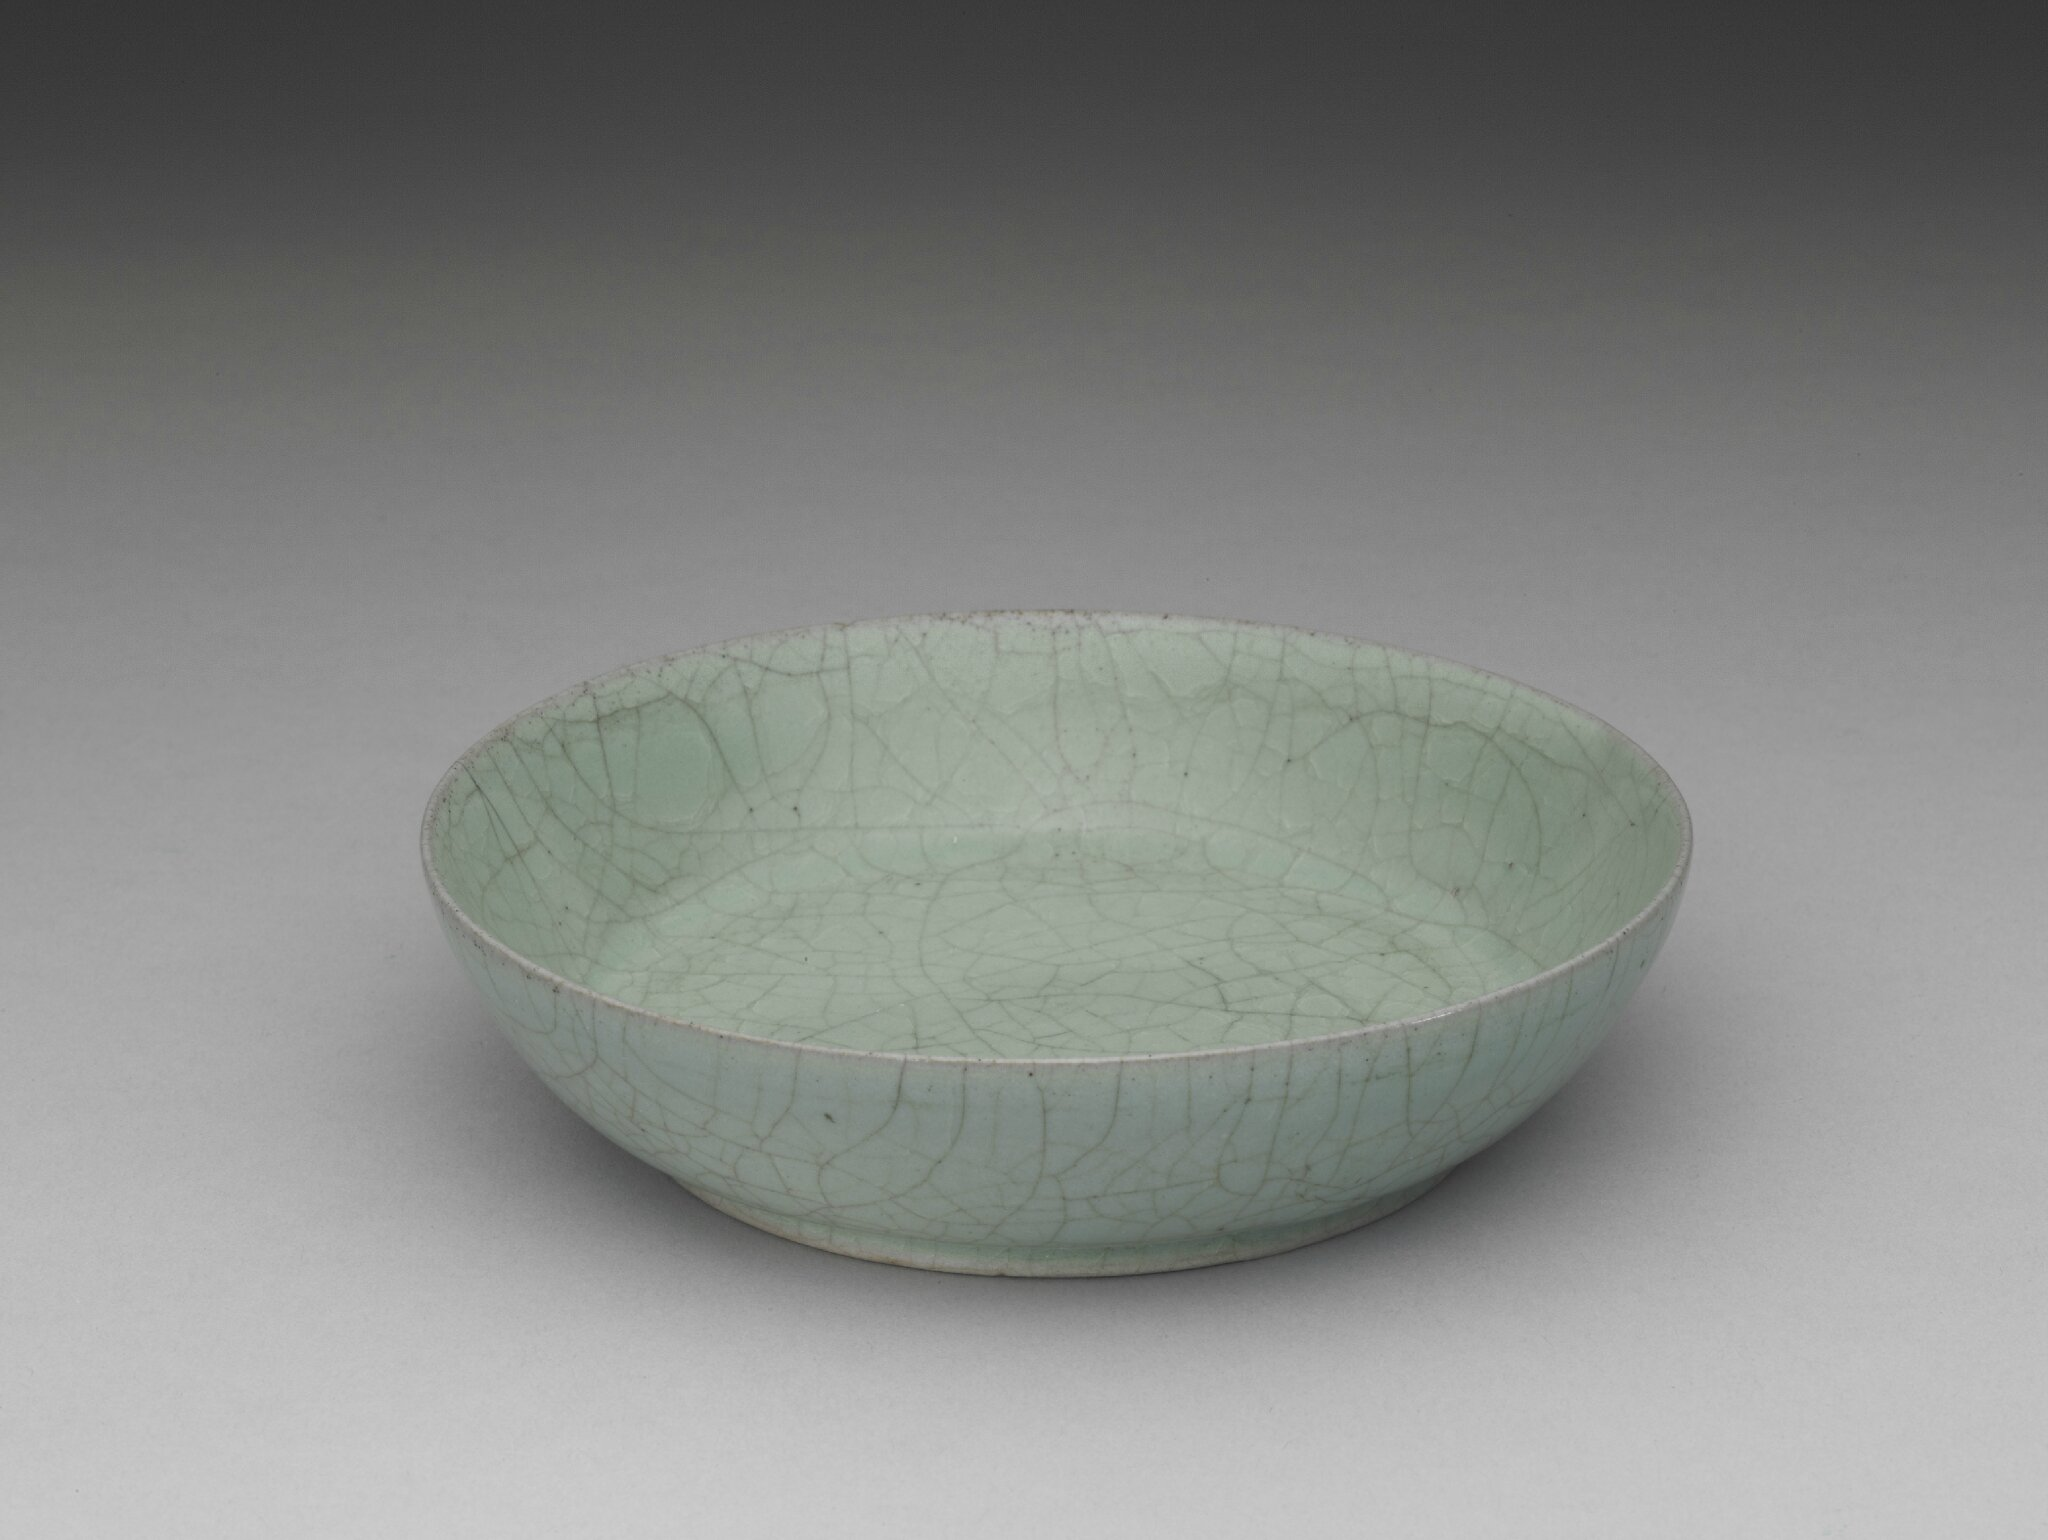 Dish with celadon glaze Ru ware, Northern Song dynasty, late 11th- early 12th century